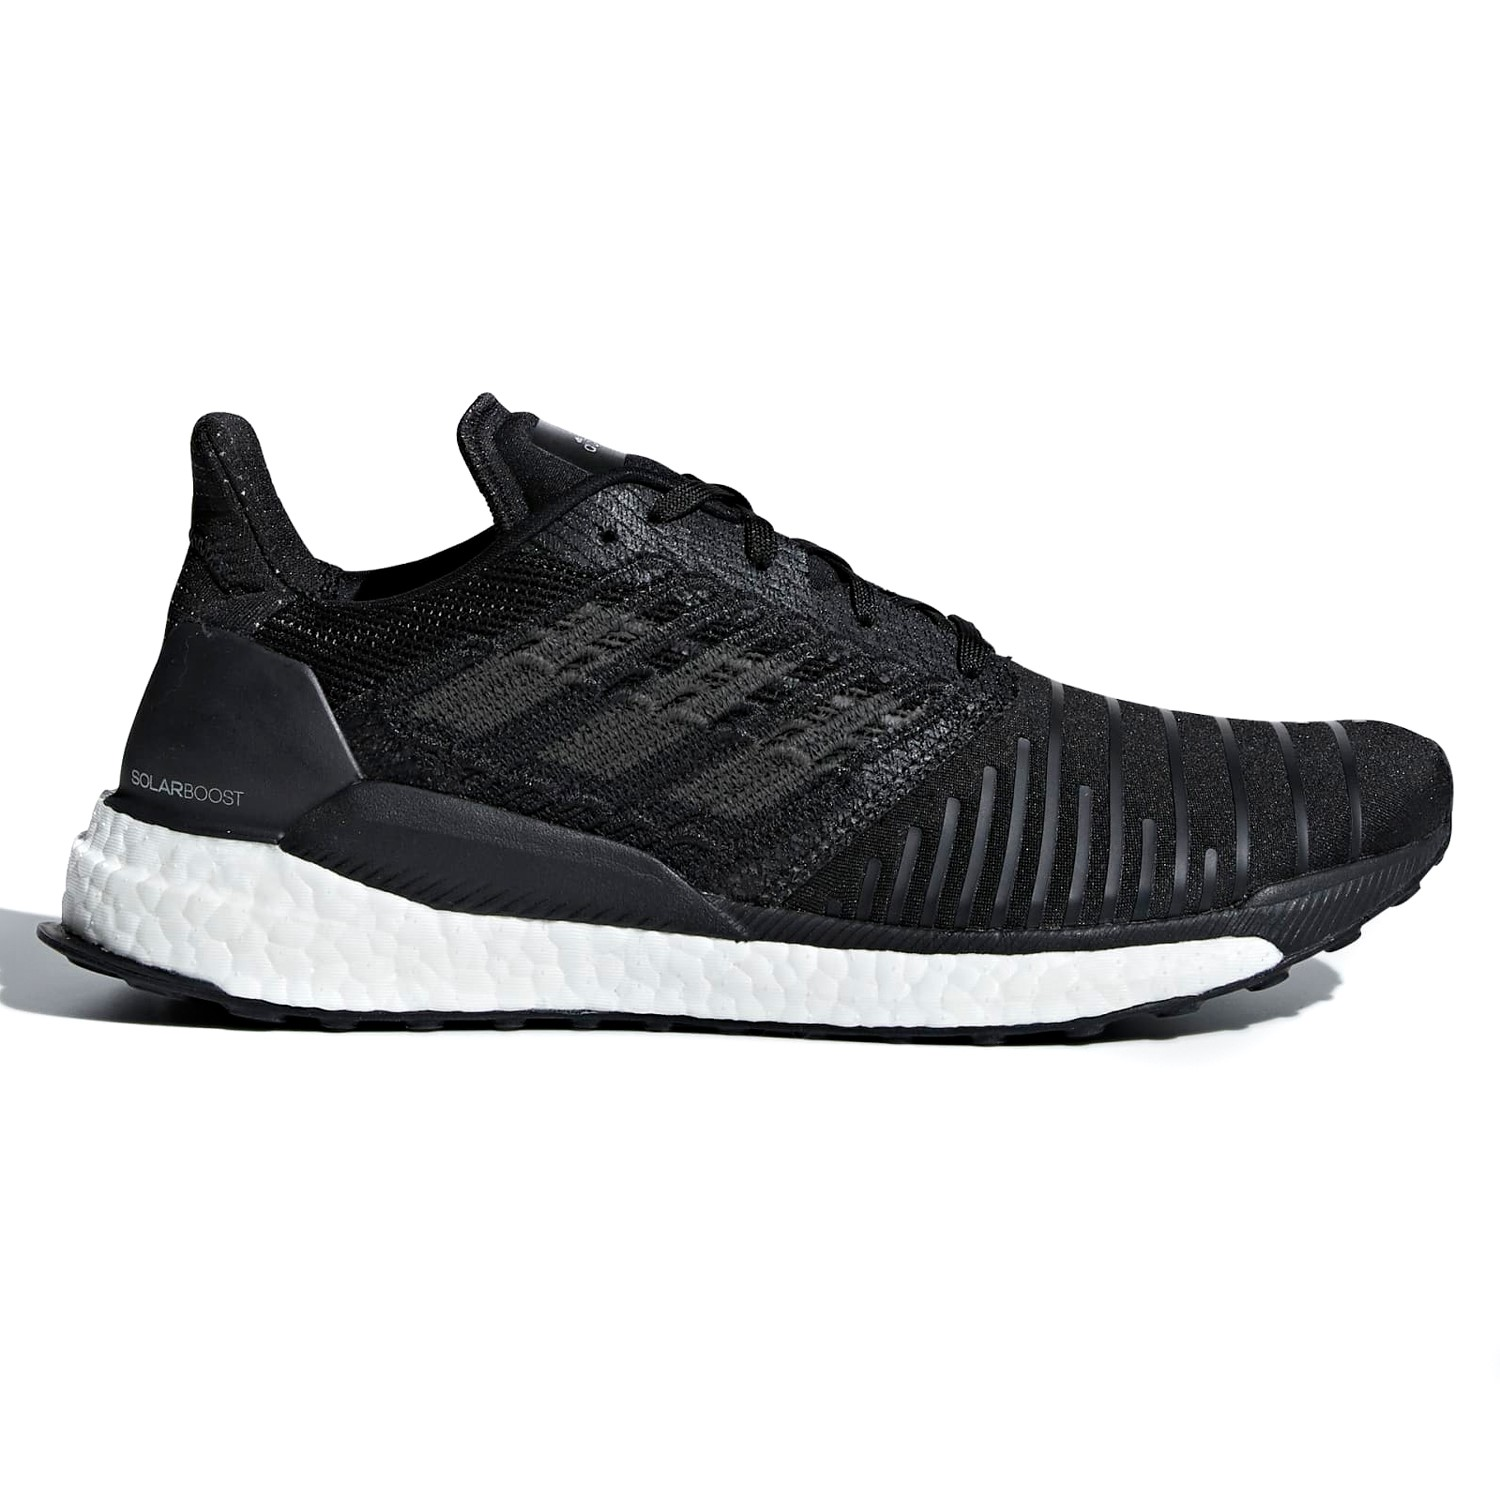 a7f2a19b9b9ba Adidas Solar Boost - Womens Running Shoes - Core Black Grey Footwear White